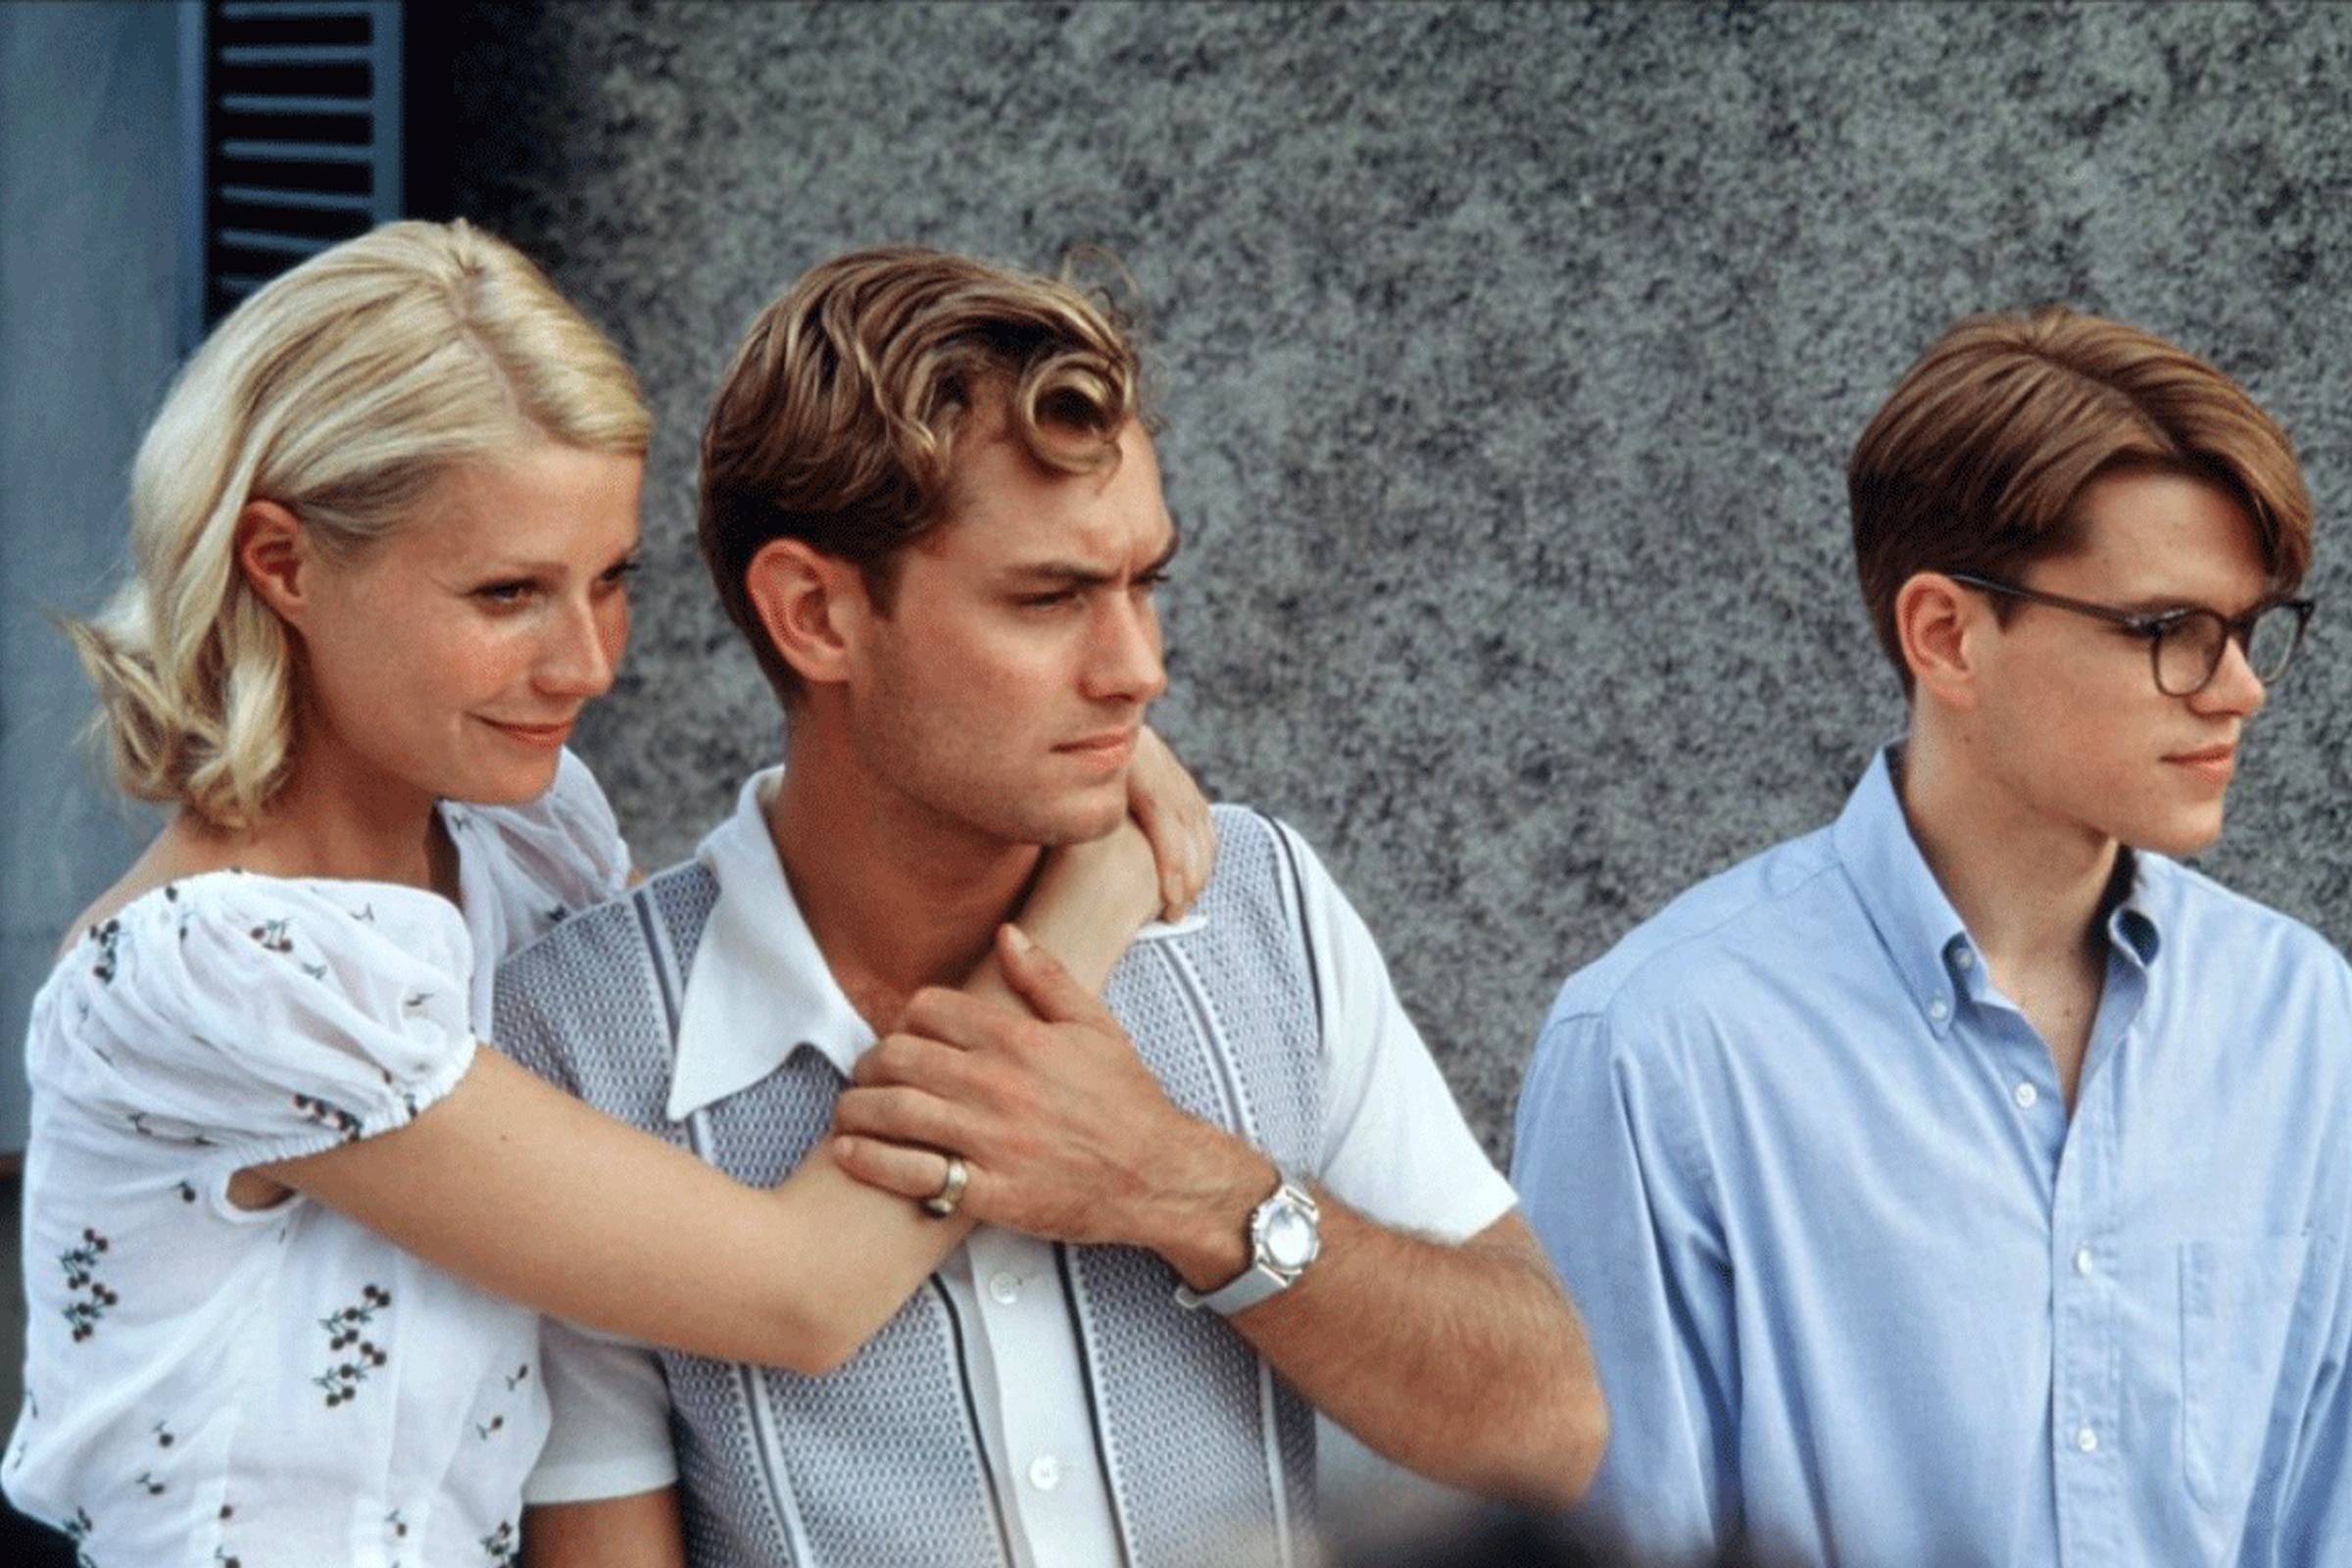 """The Talented Mr. Ripley"": A Study in Casual Elegance"